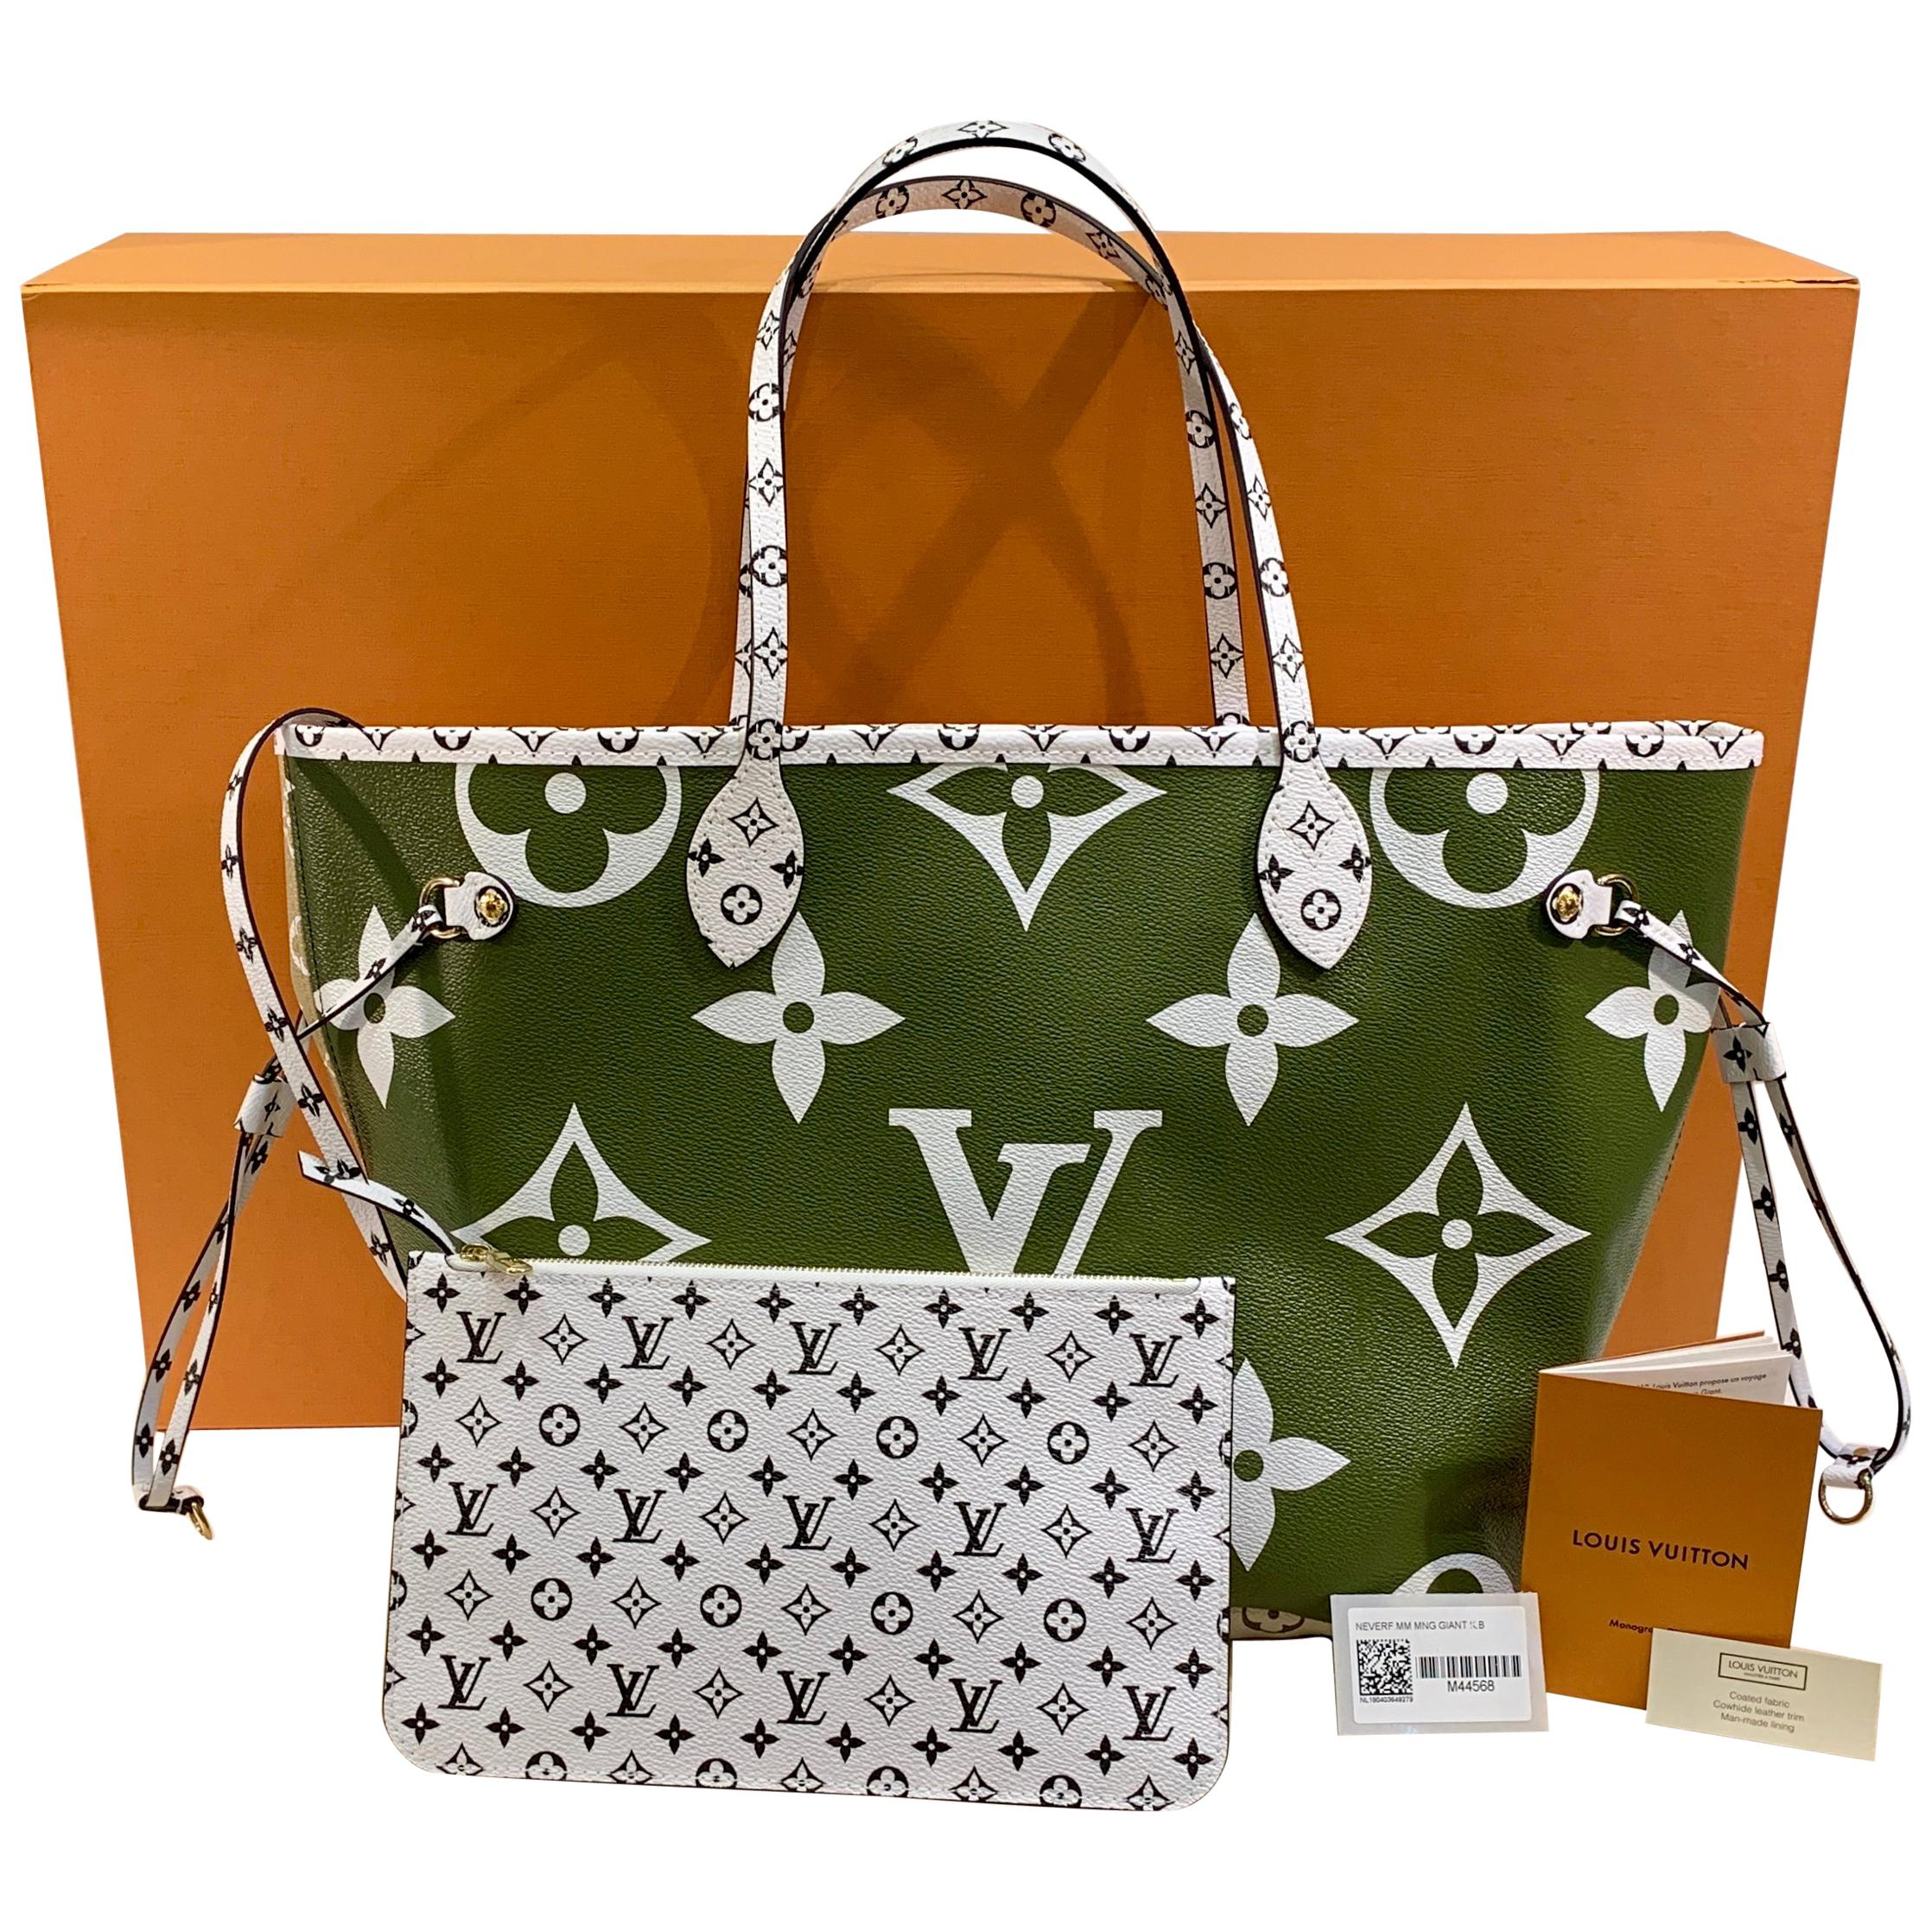 42a5f16fd85 New Sold Out Louis Vuitton NEVERFULL MM Khaki/Beige Ladies Tote Bag Summer  2019